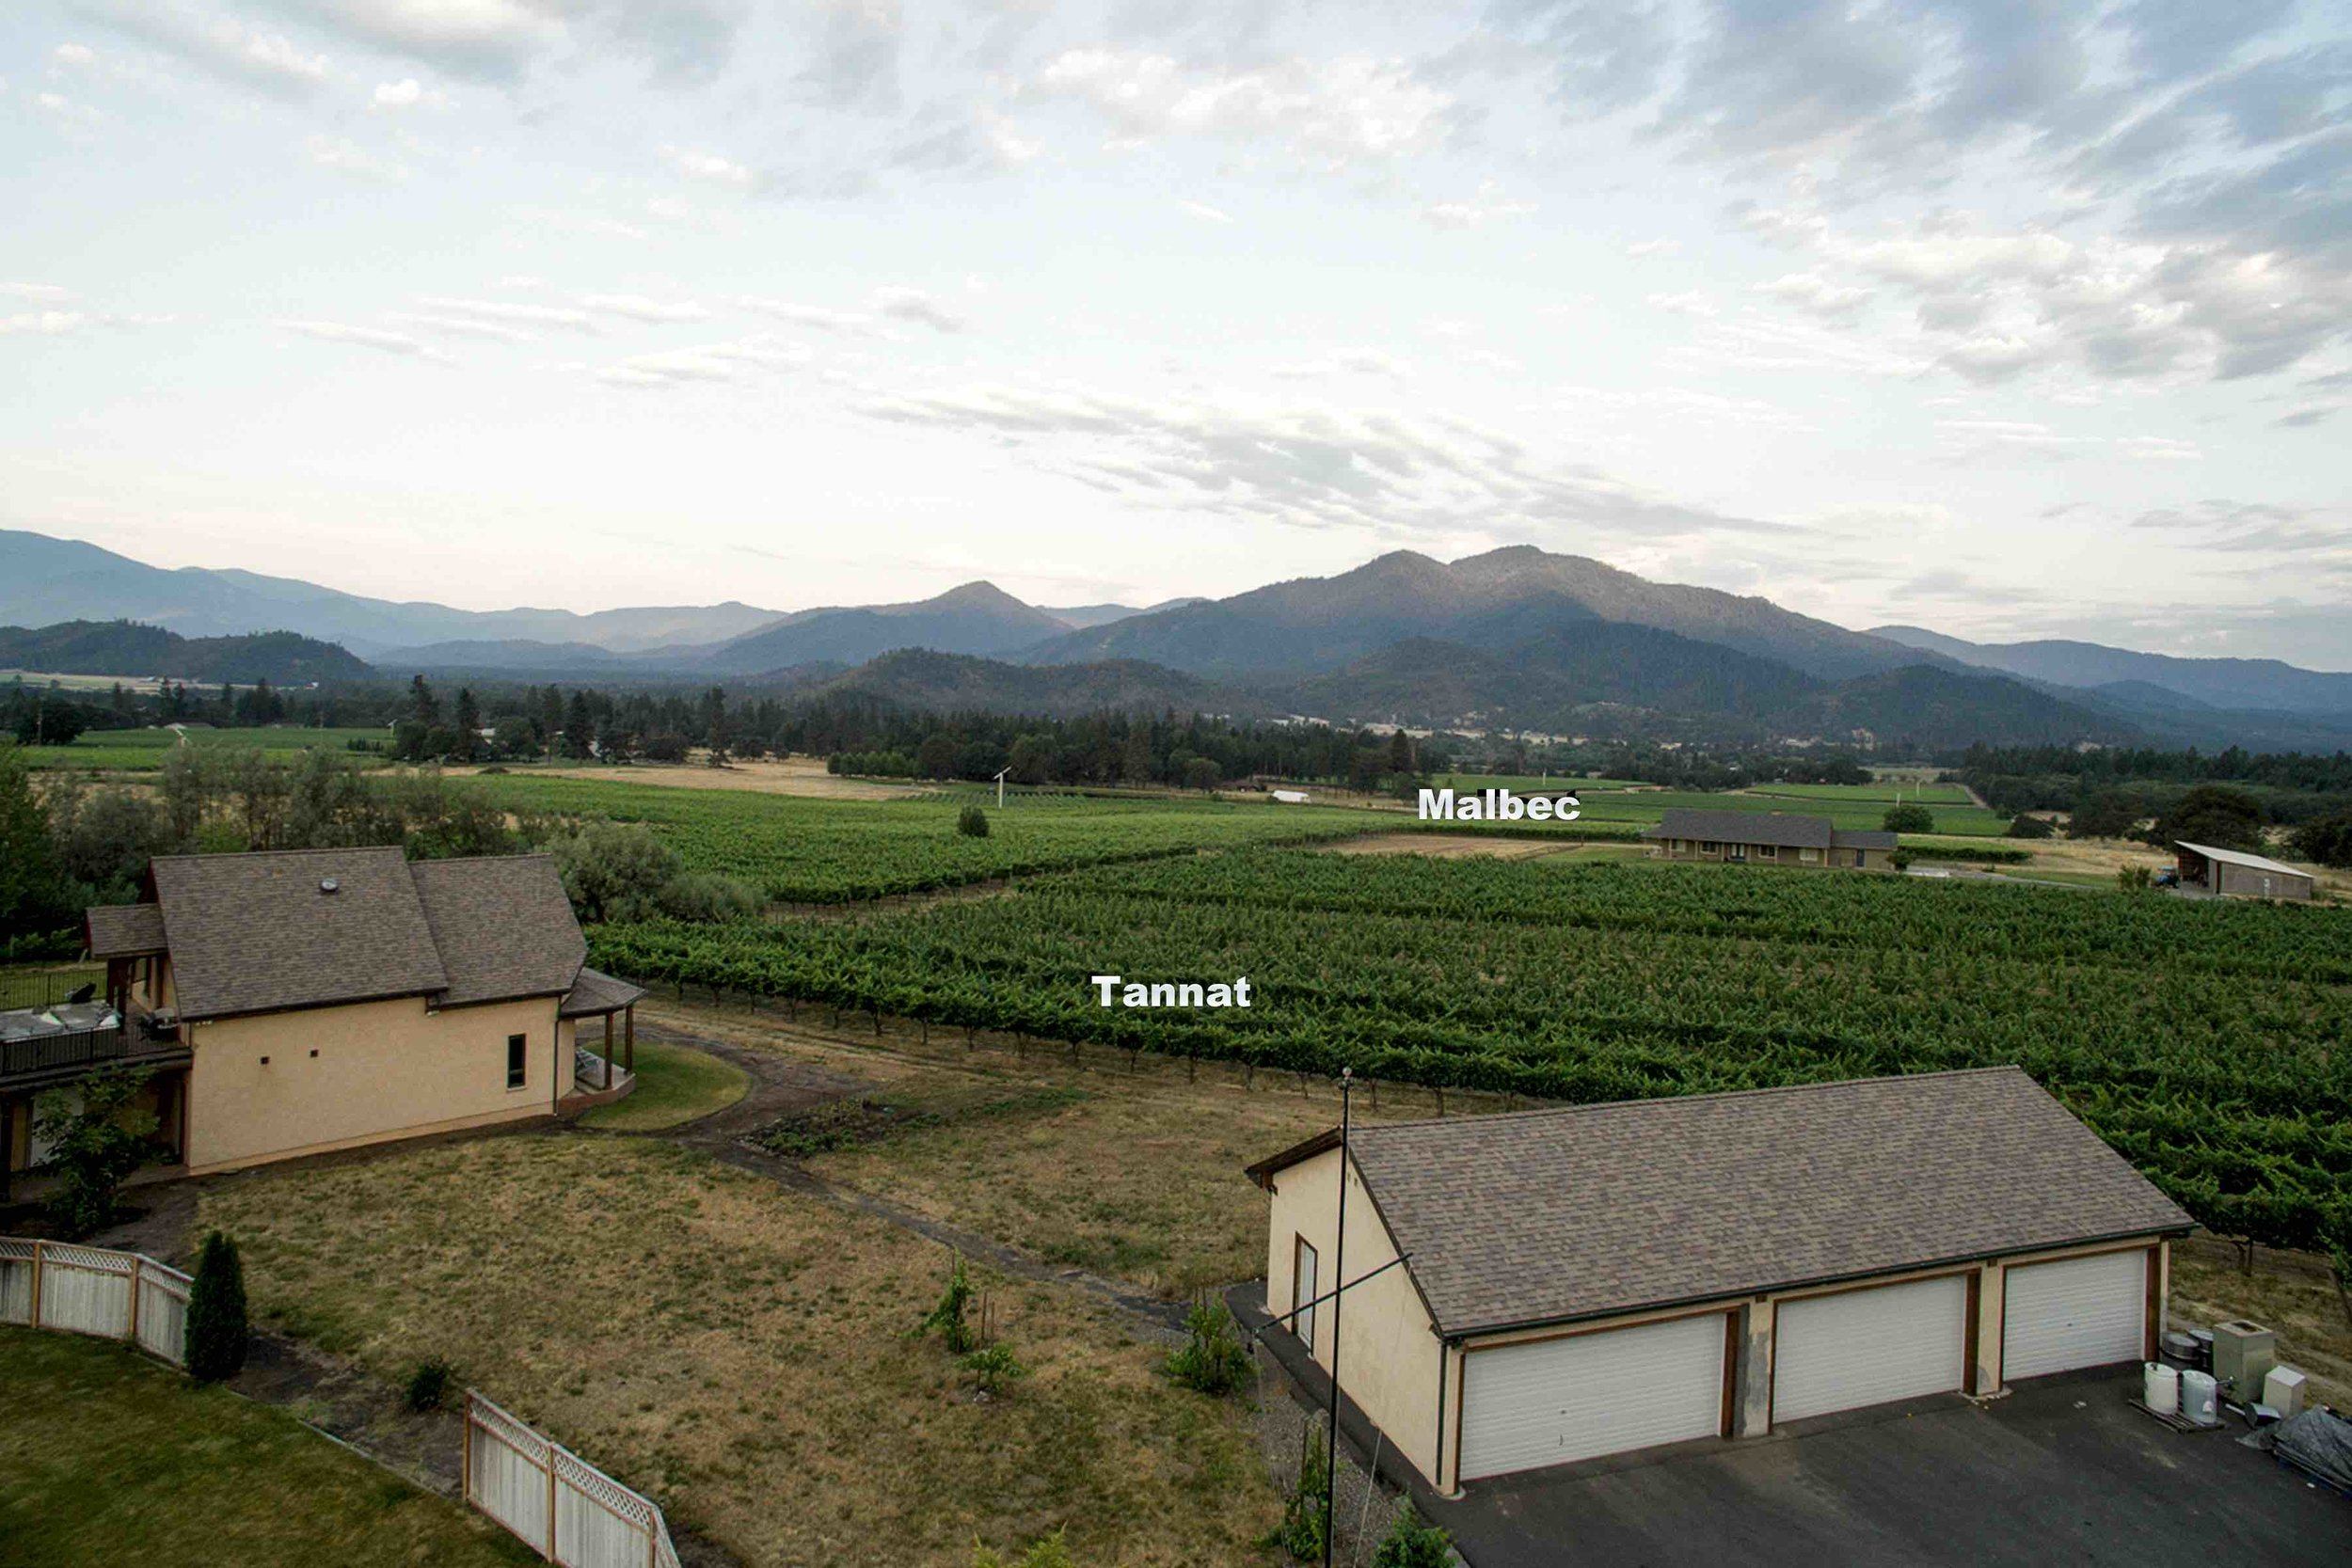 Troon Tannat and Malbec blocks looking west from the winery.